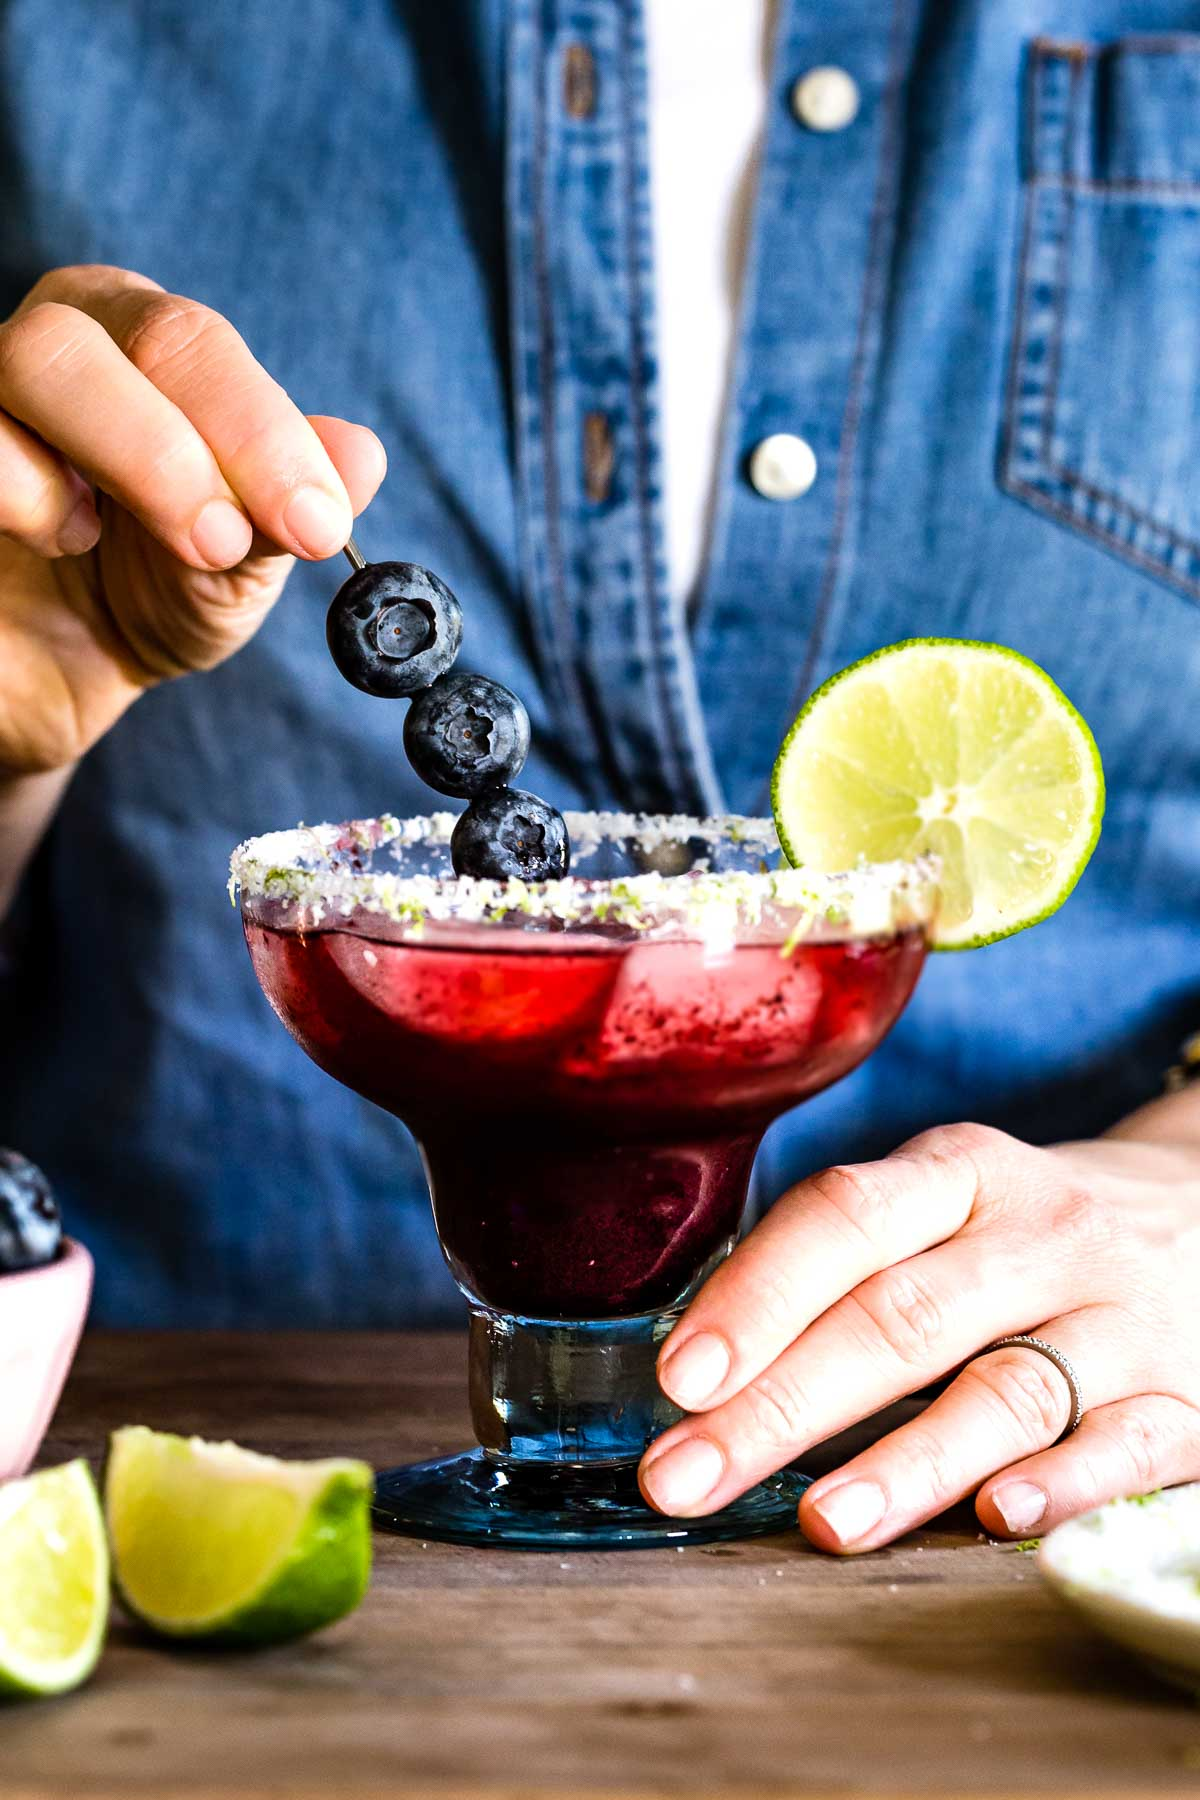 Person garnishing blueberry puree cocktail with blueberries